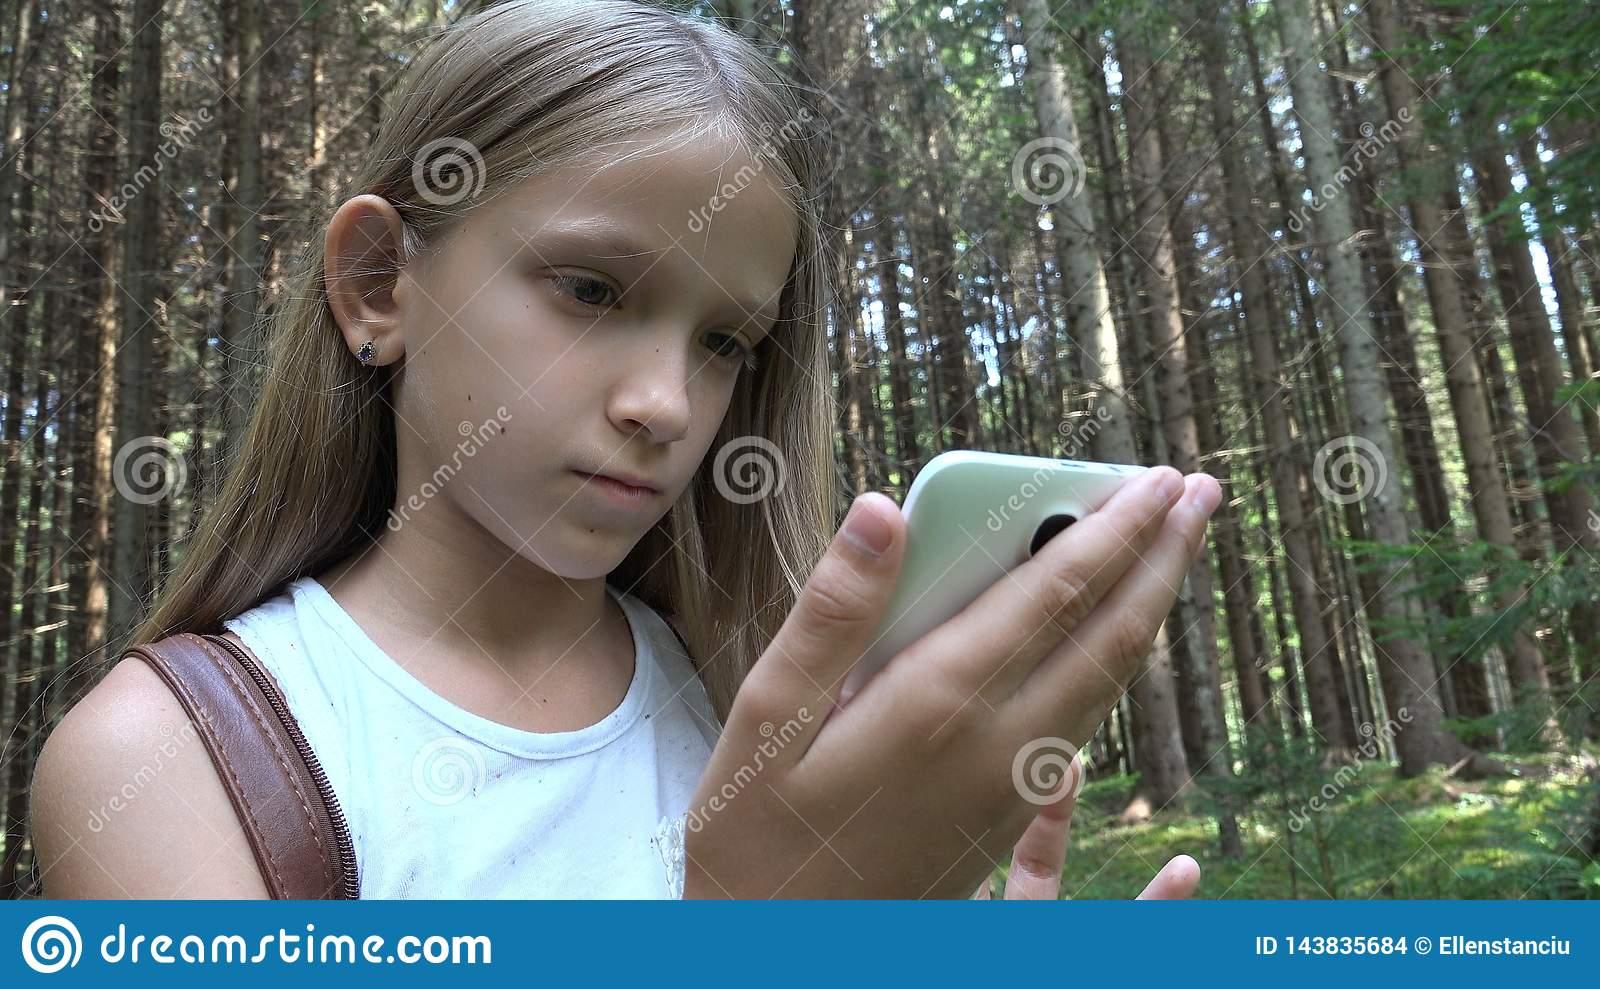 Child Playing Tablet Outdoor in Camping, Kid use Smartphone in Forest, Girl View